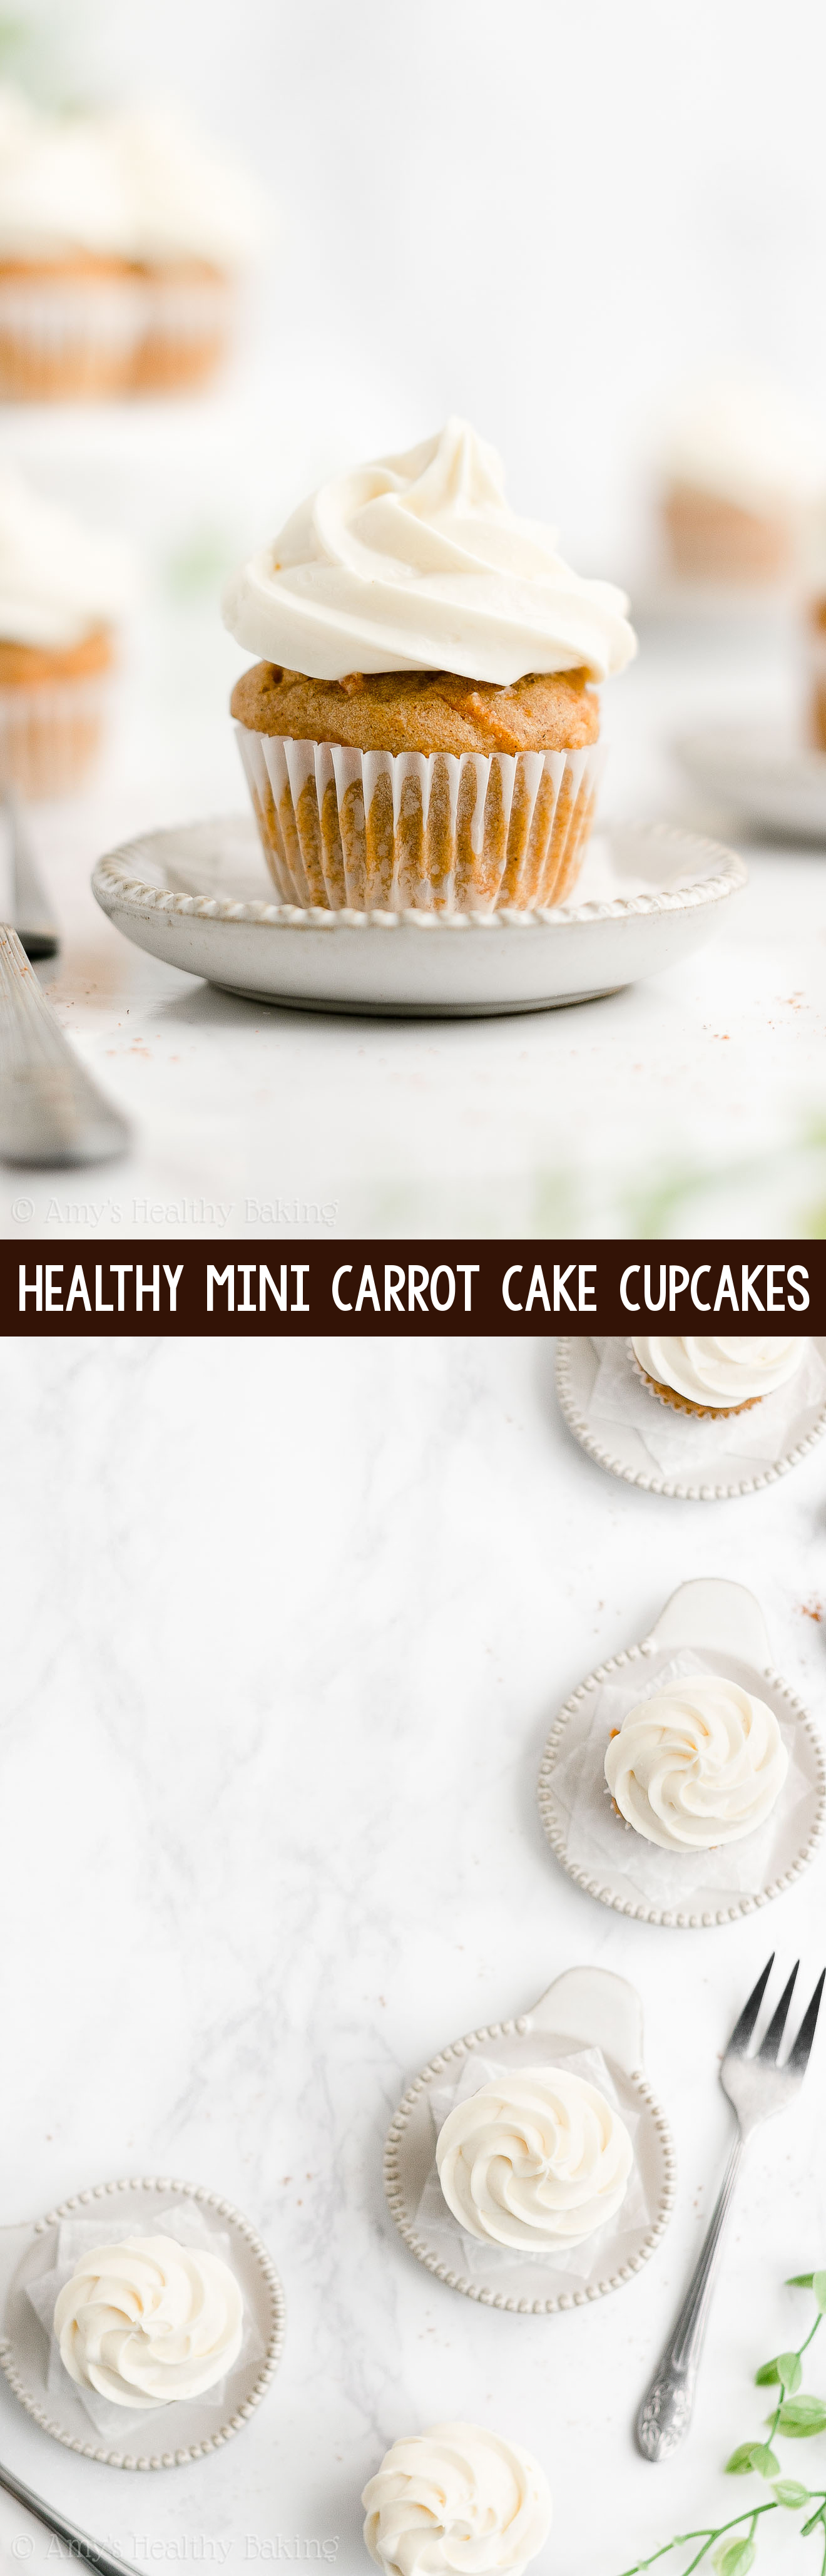 ULTIMATE Best Easy Healthy Clean Eating Moist Mini Carrot Cake Cupcakes From Scratch